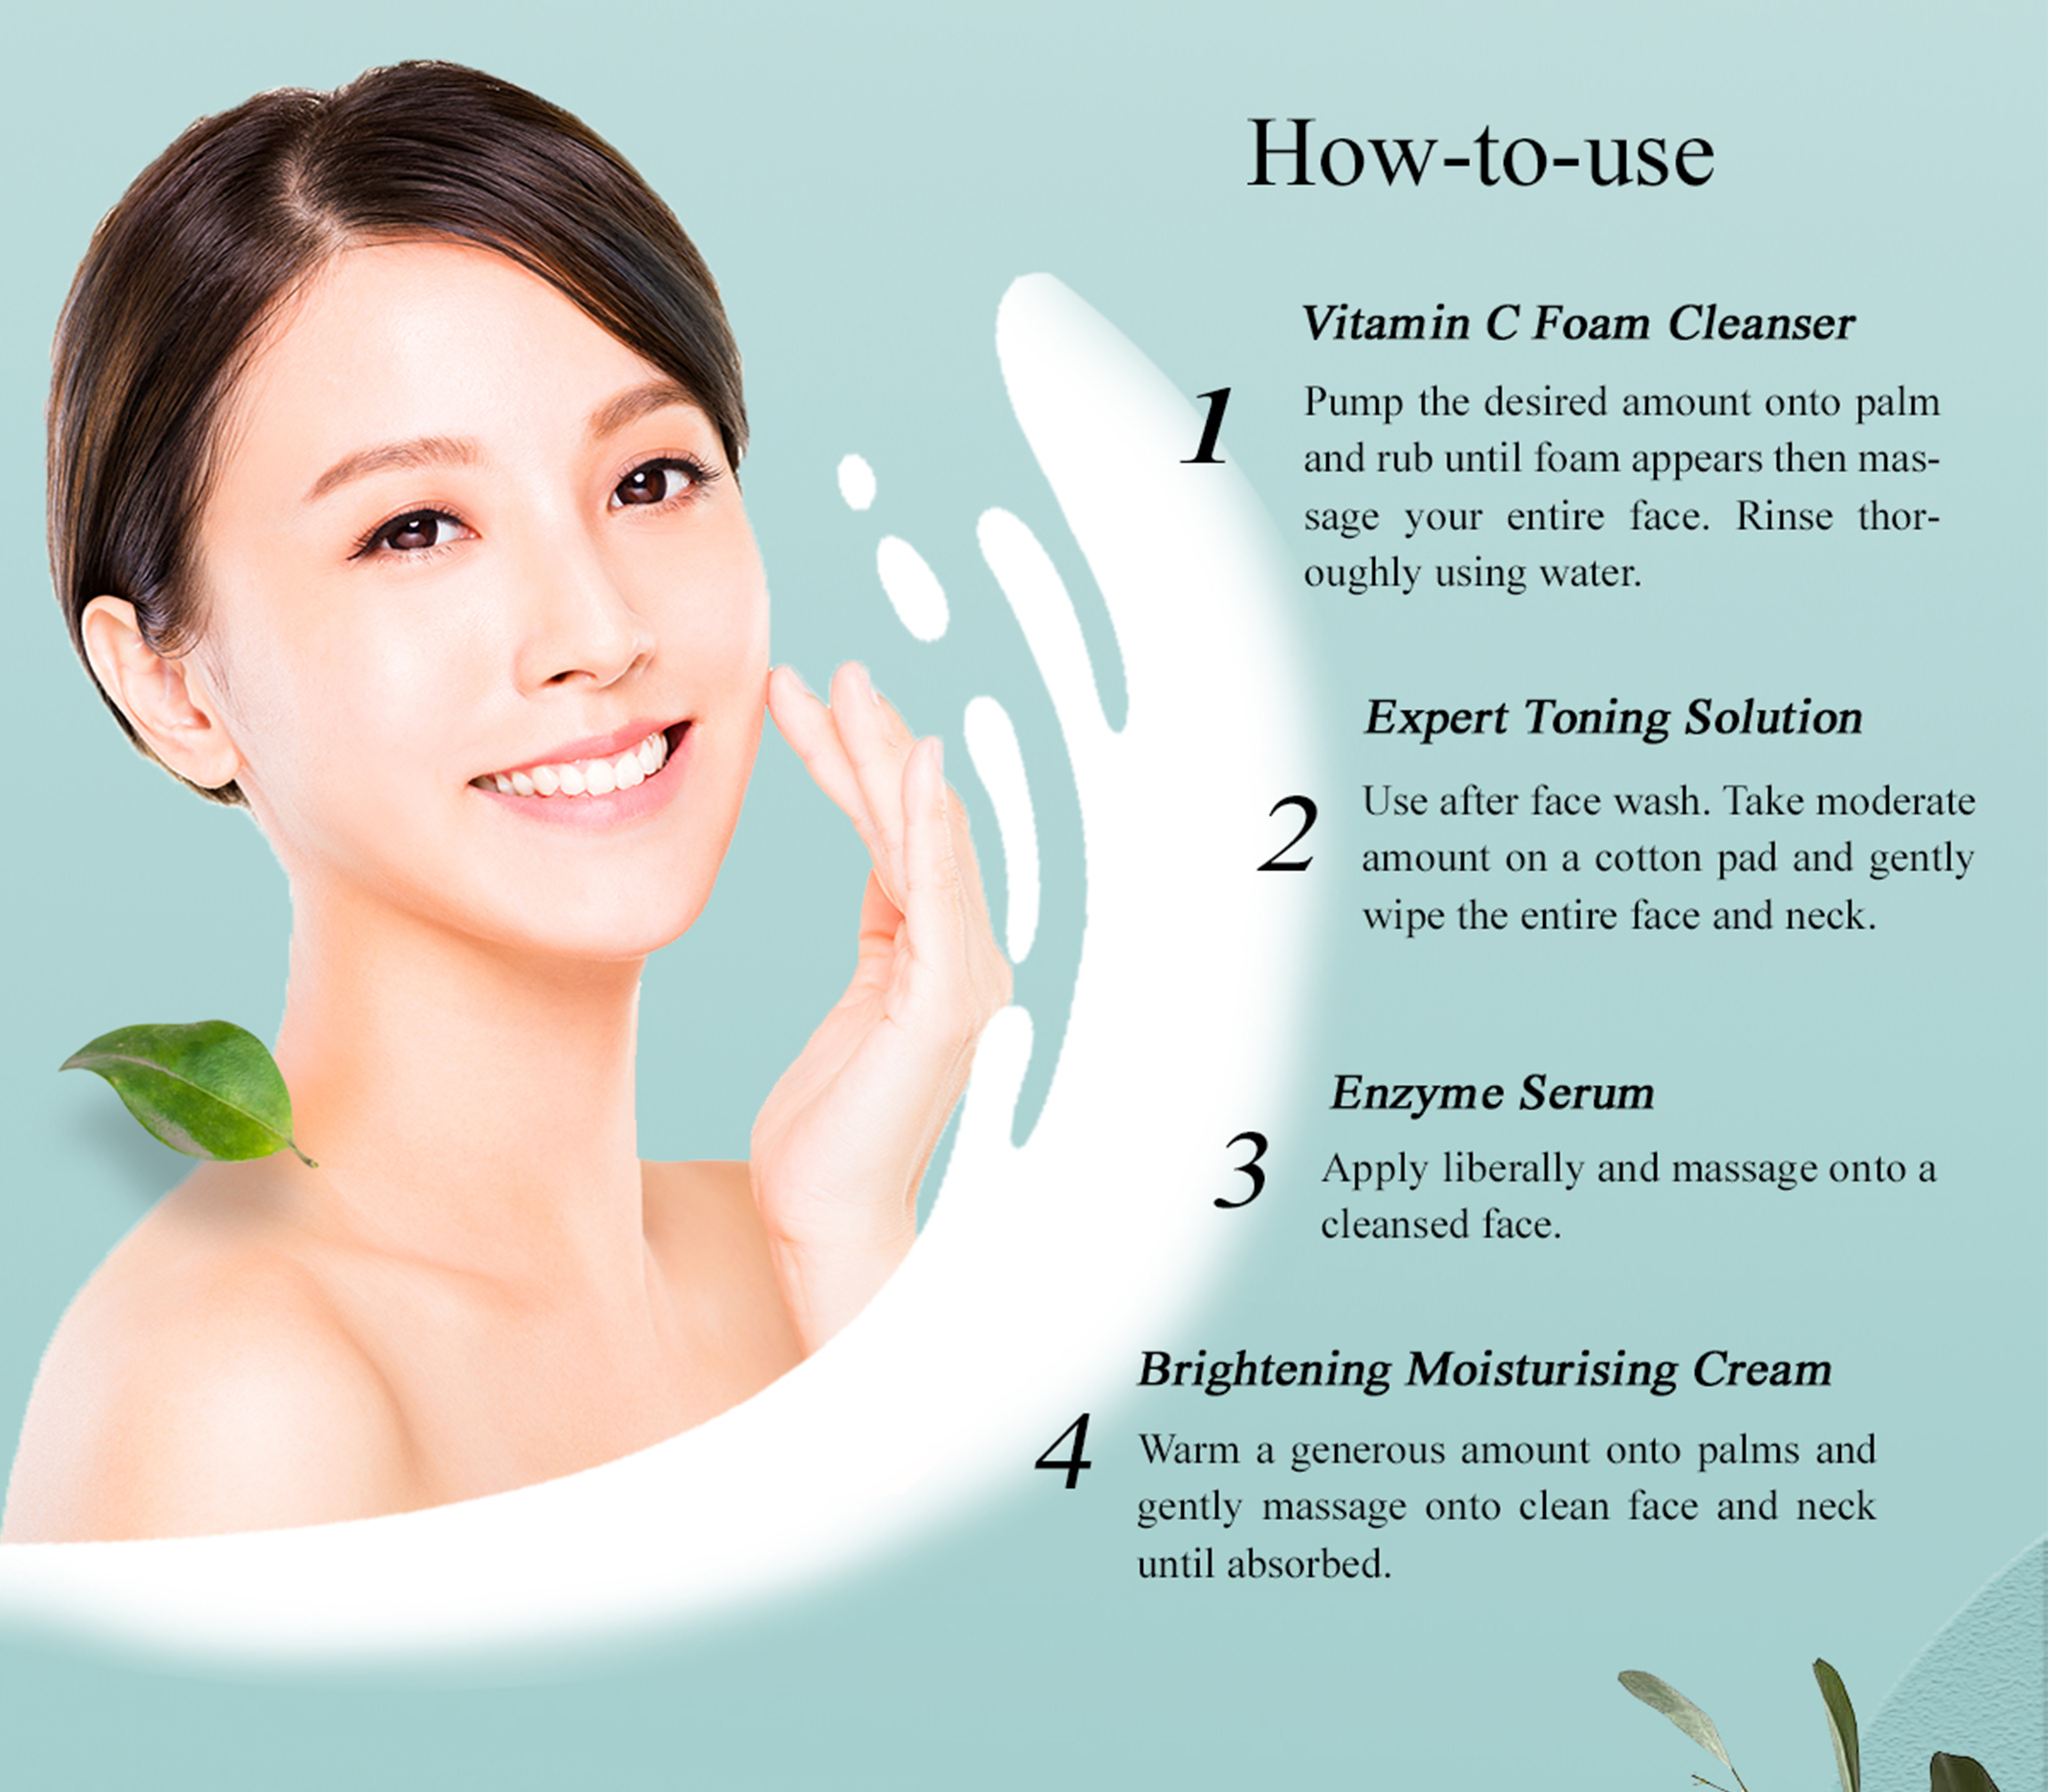 acne-how-to-use